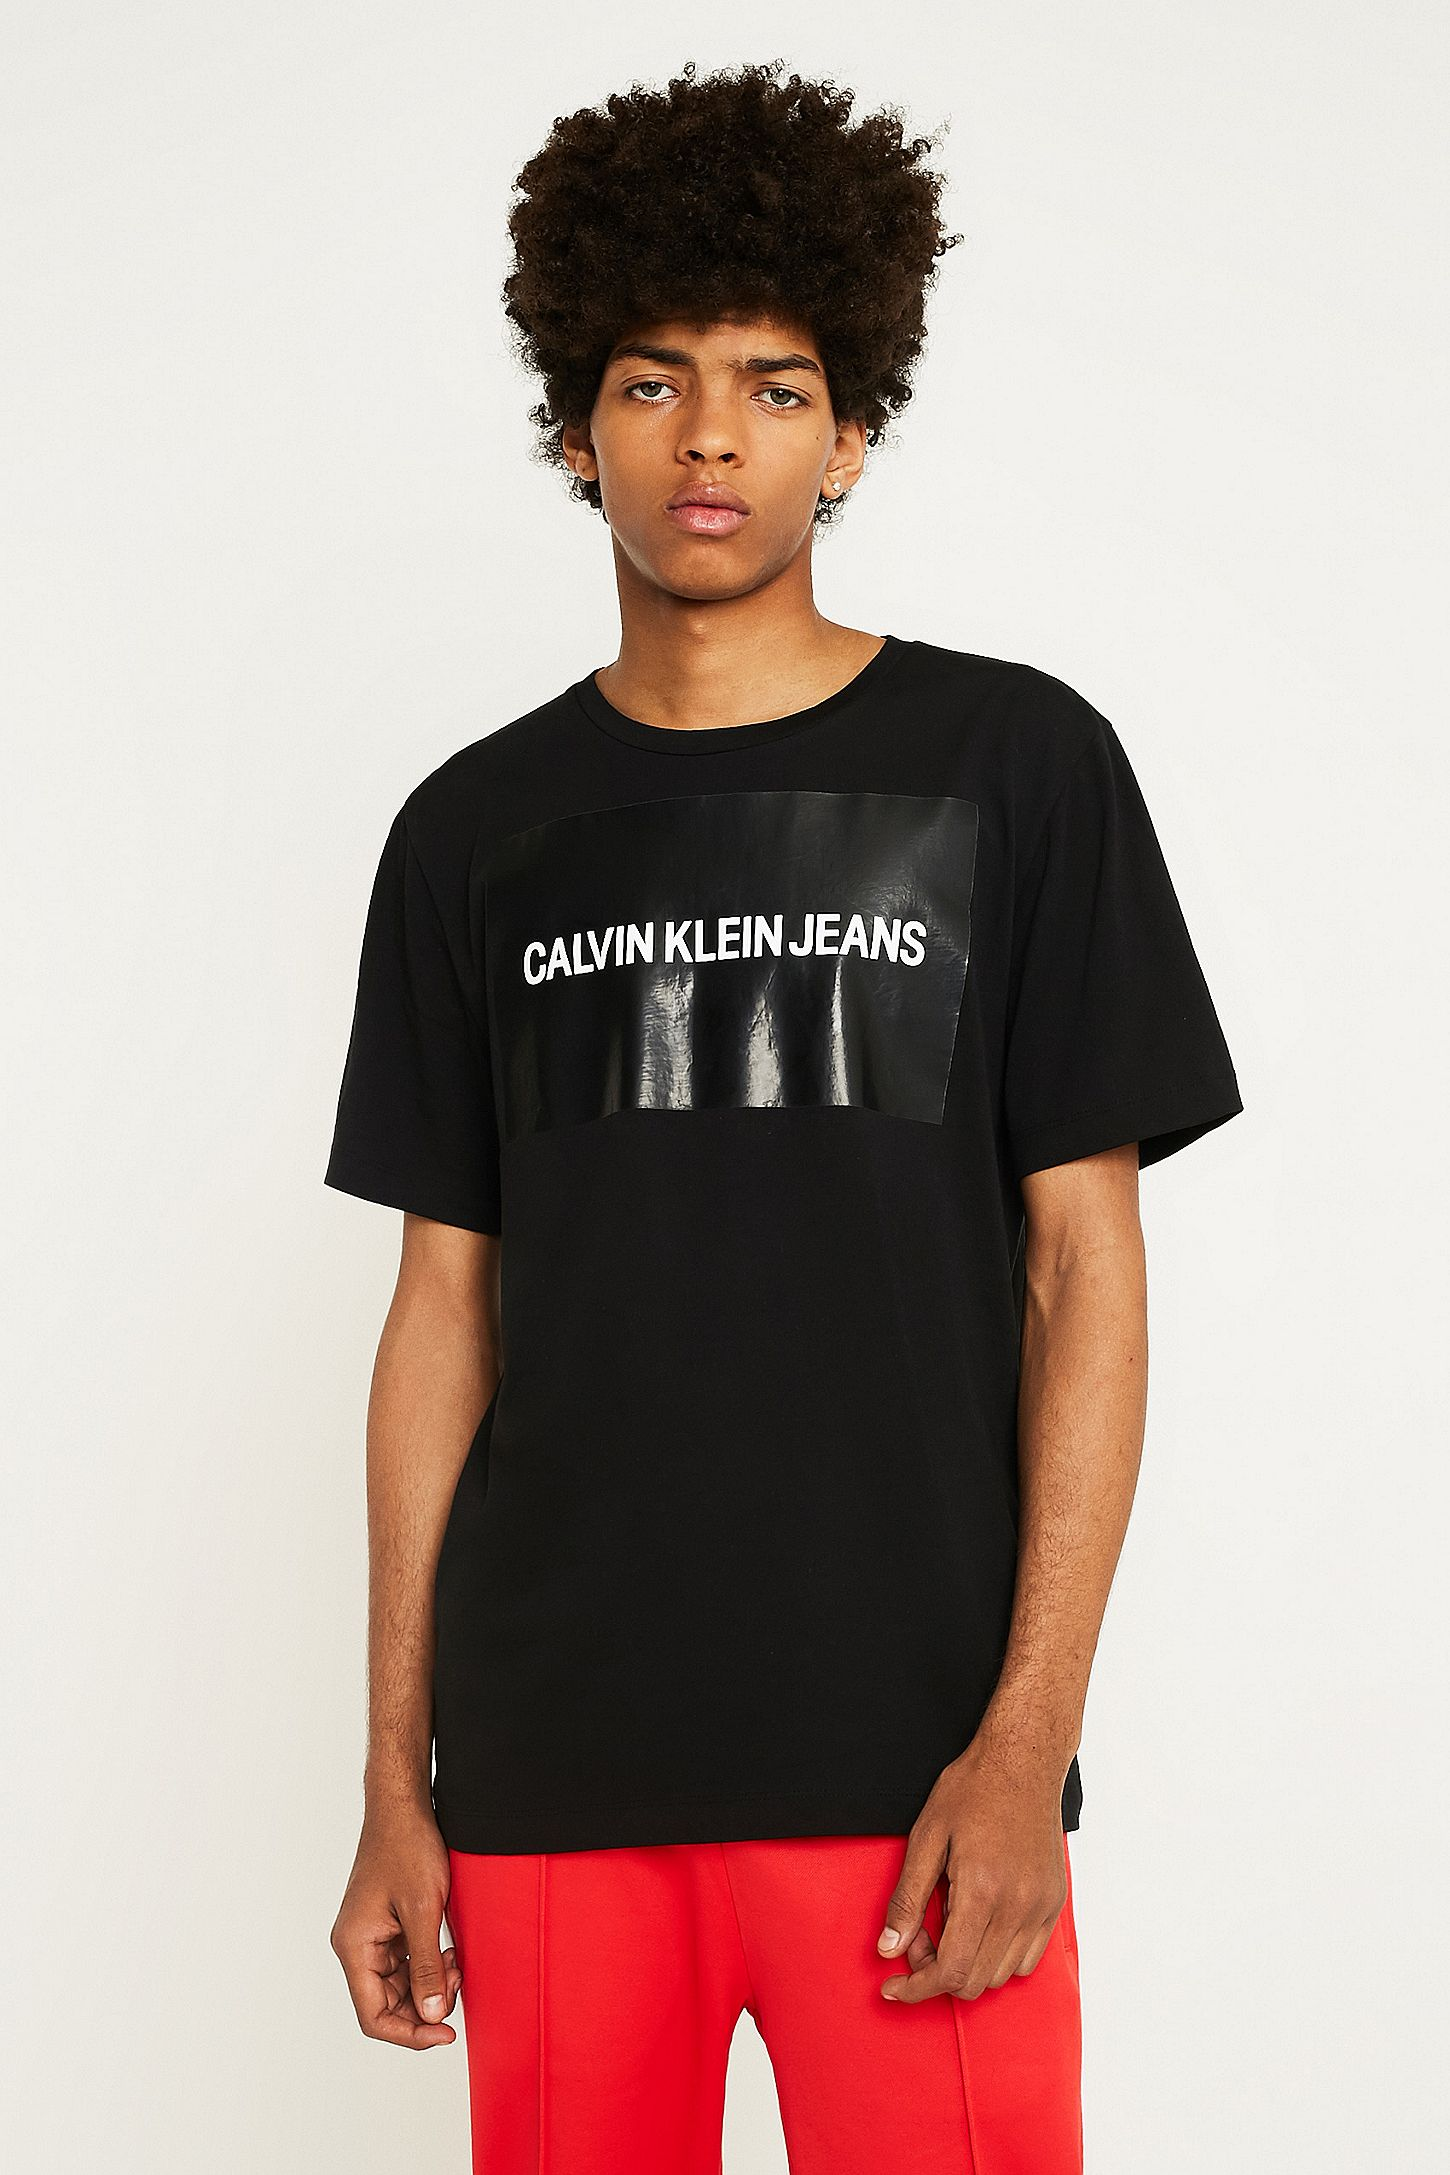 7da99b979220 Calvin Klein Jeans Institutional Box Logo Black T-Shirt. Click on image to  zoom. Hover to zoom. Double Tap to Zoom